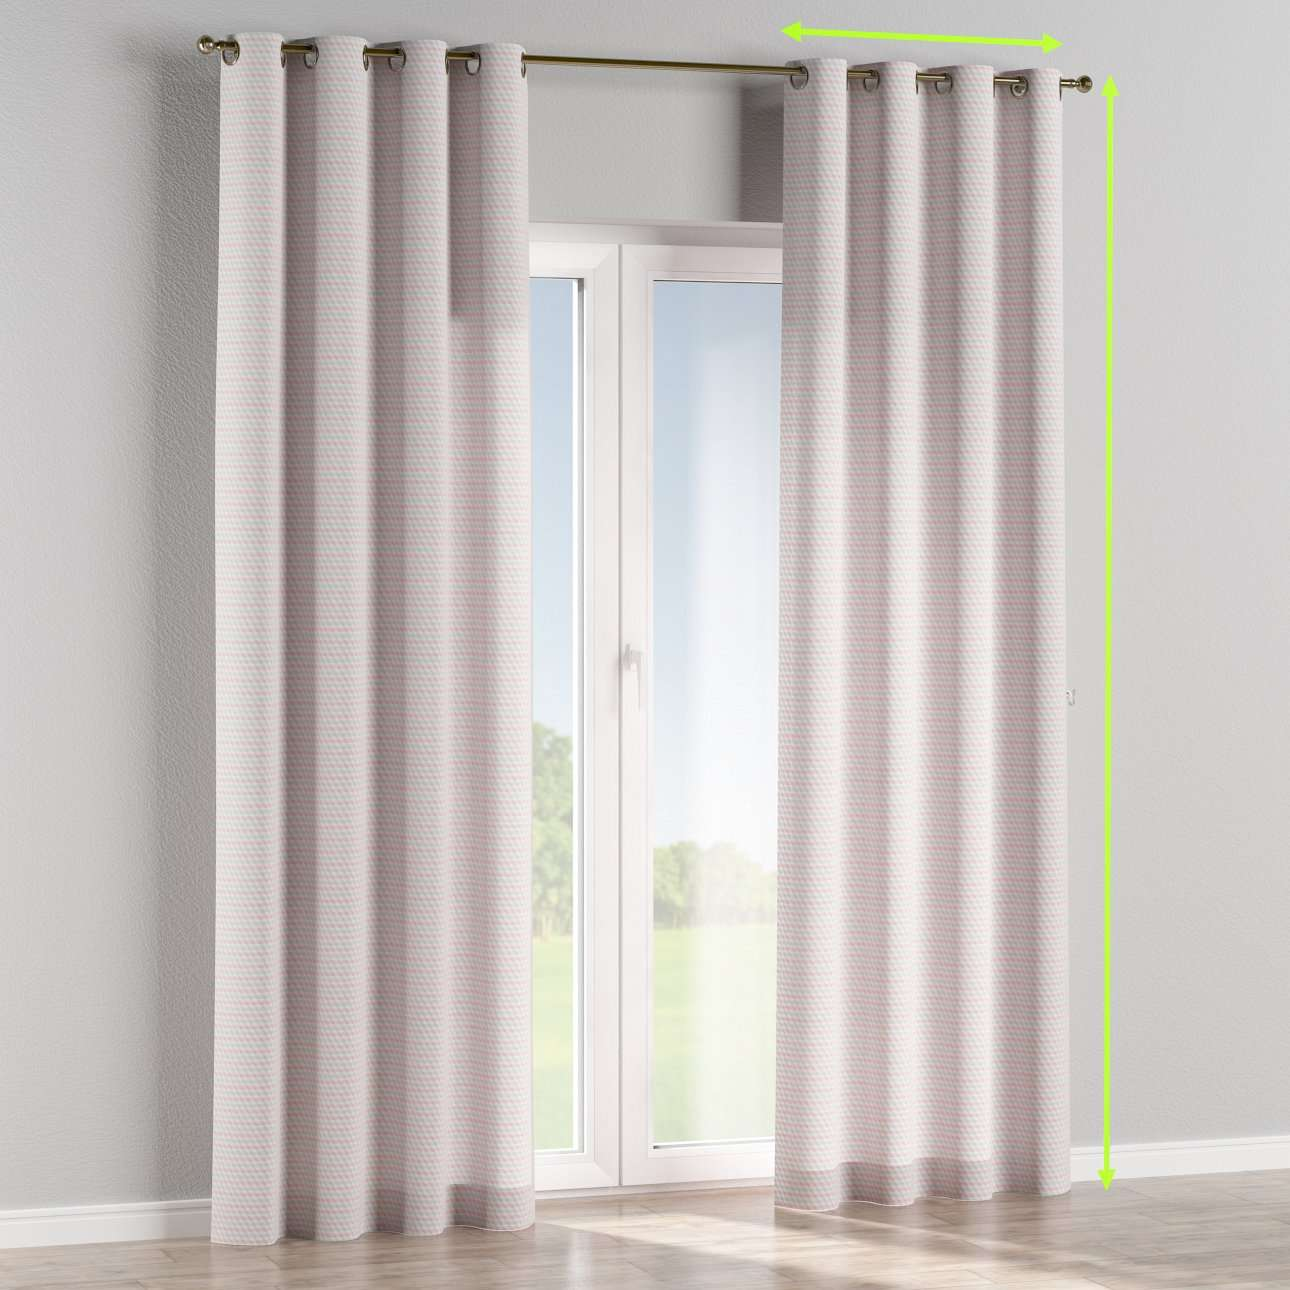 Eyelet lined curtains in collection Rustica, fabric: 140-30